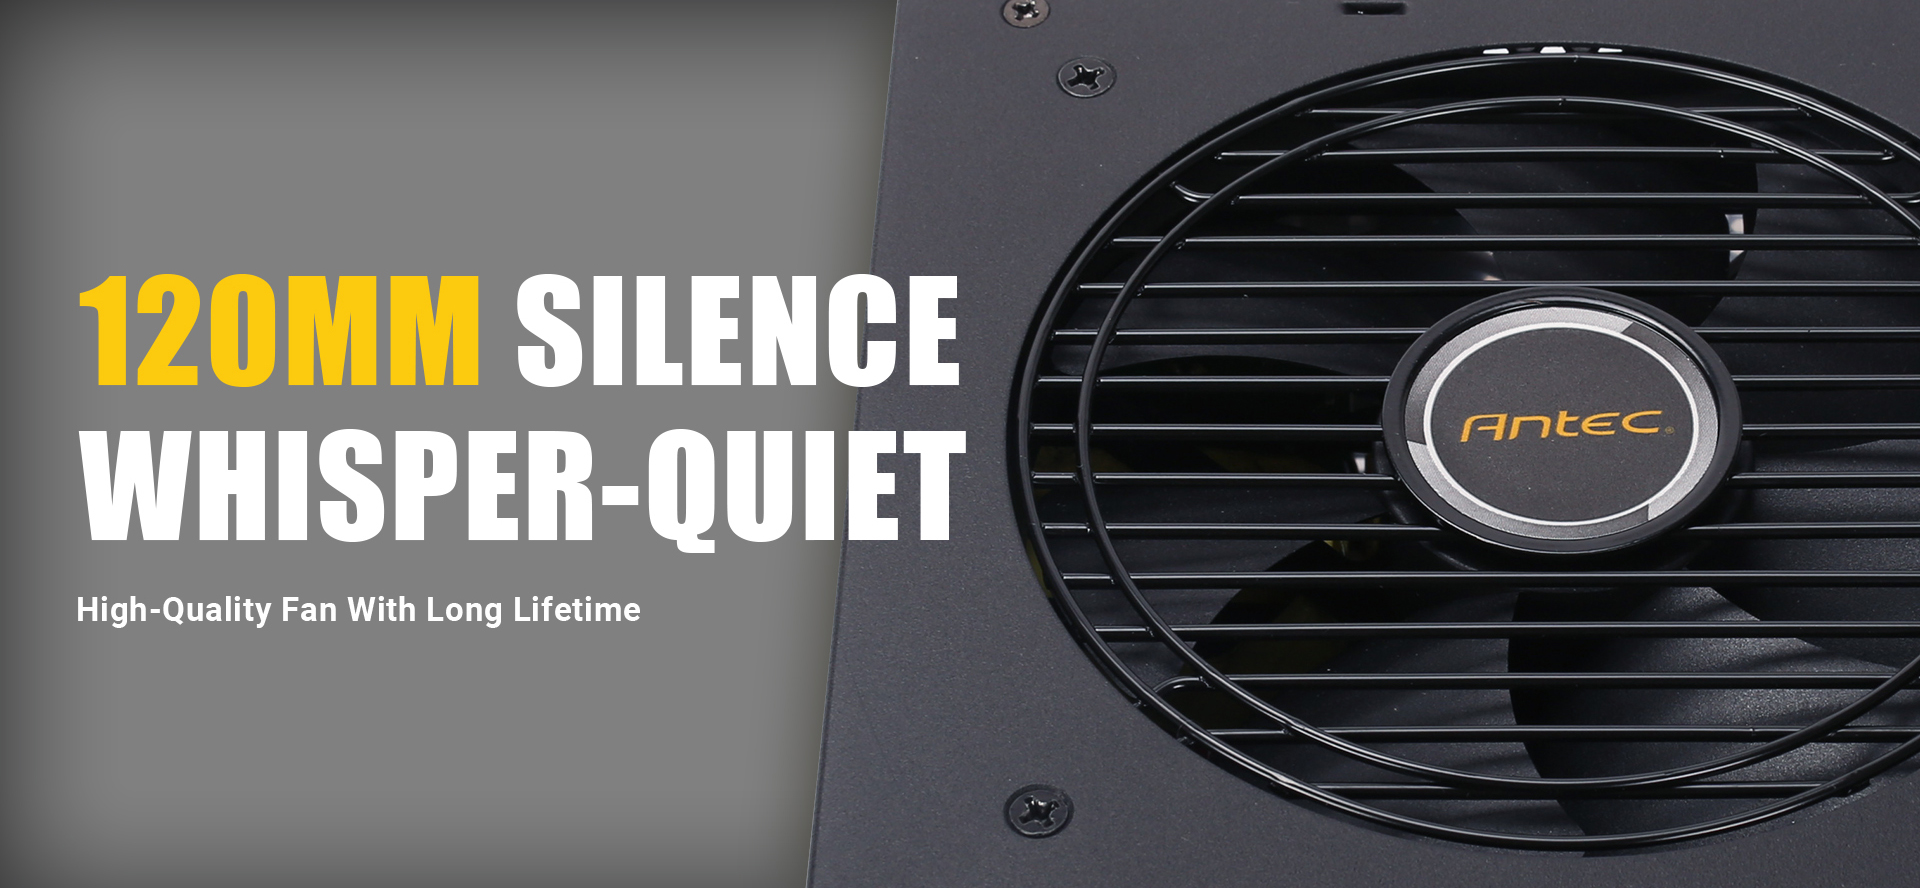 Closeup of the Antec NeoECO Power Supply's Fan, Next to Text That Reads: 120MM SILENCE WHISPER-QUIET - High-Quality Fan with a Long Lifetime